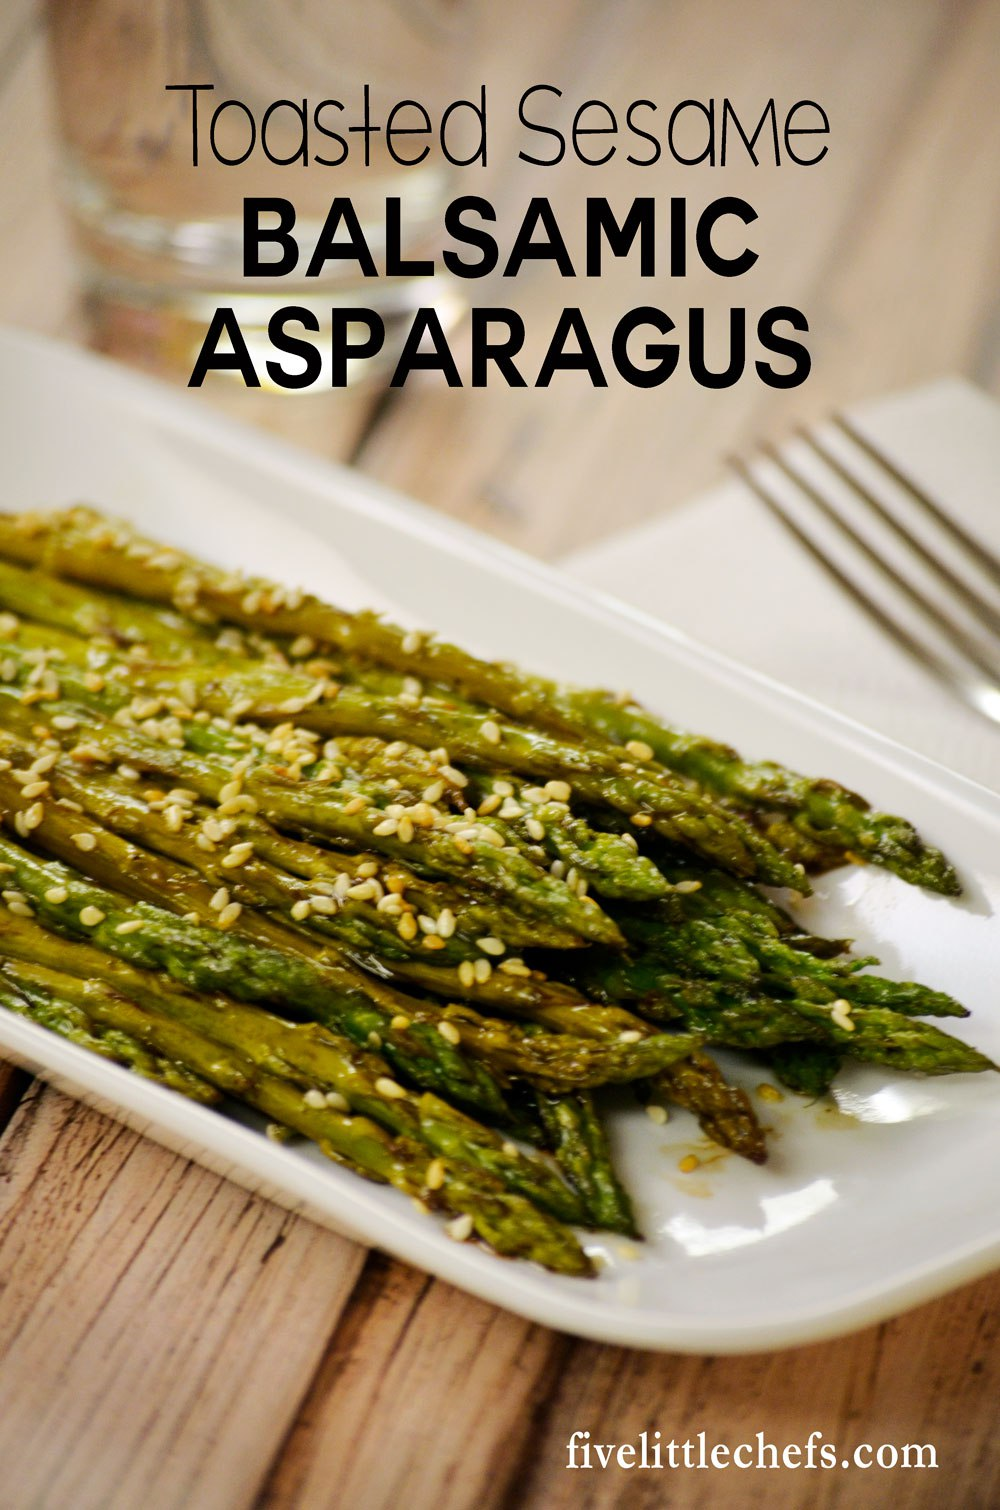 Toasted Sesame Balsamic Asparagus is simple to prepare just before your meal is served. Roasting it results in a nutty flavor with crisp stalks.